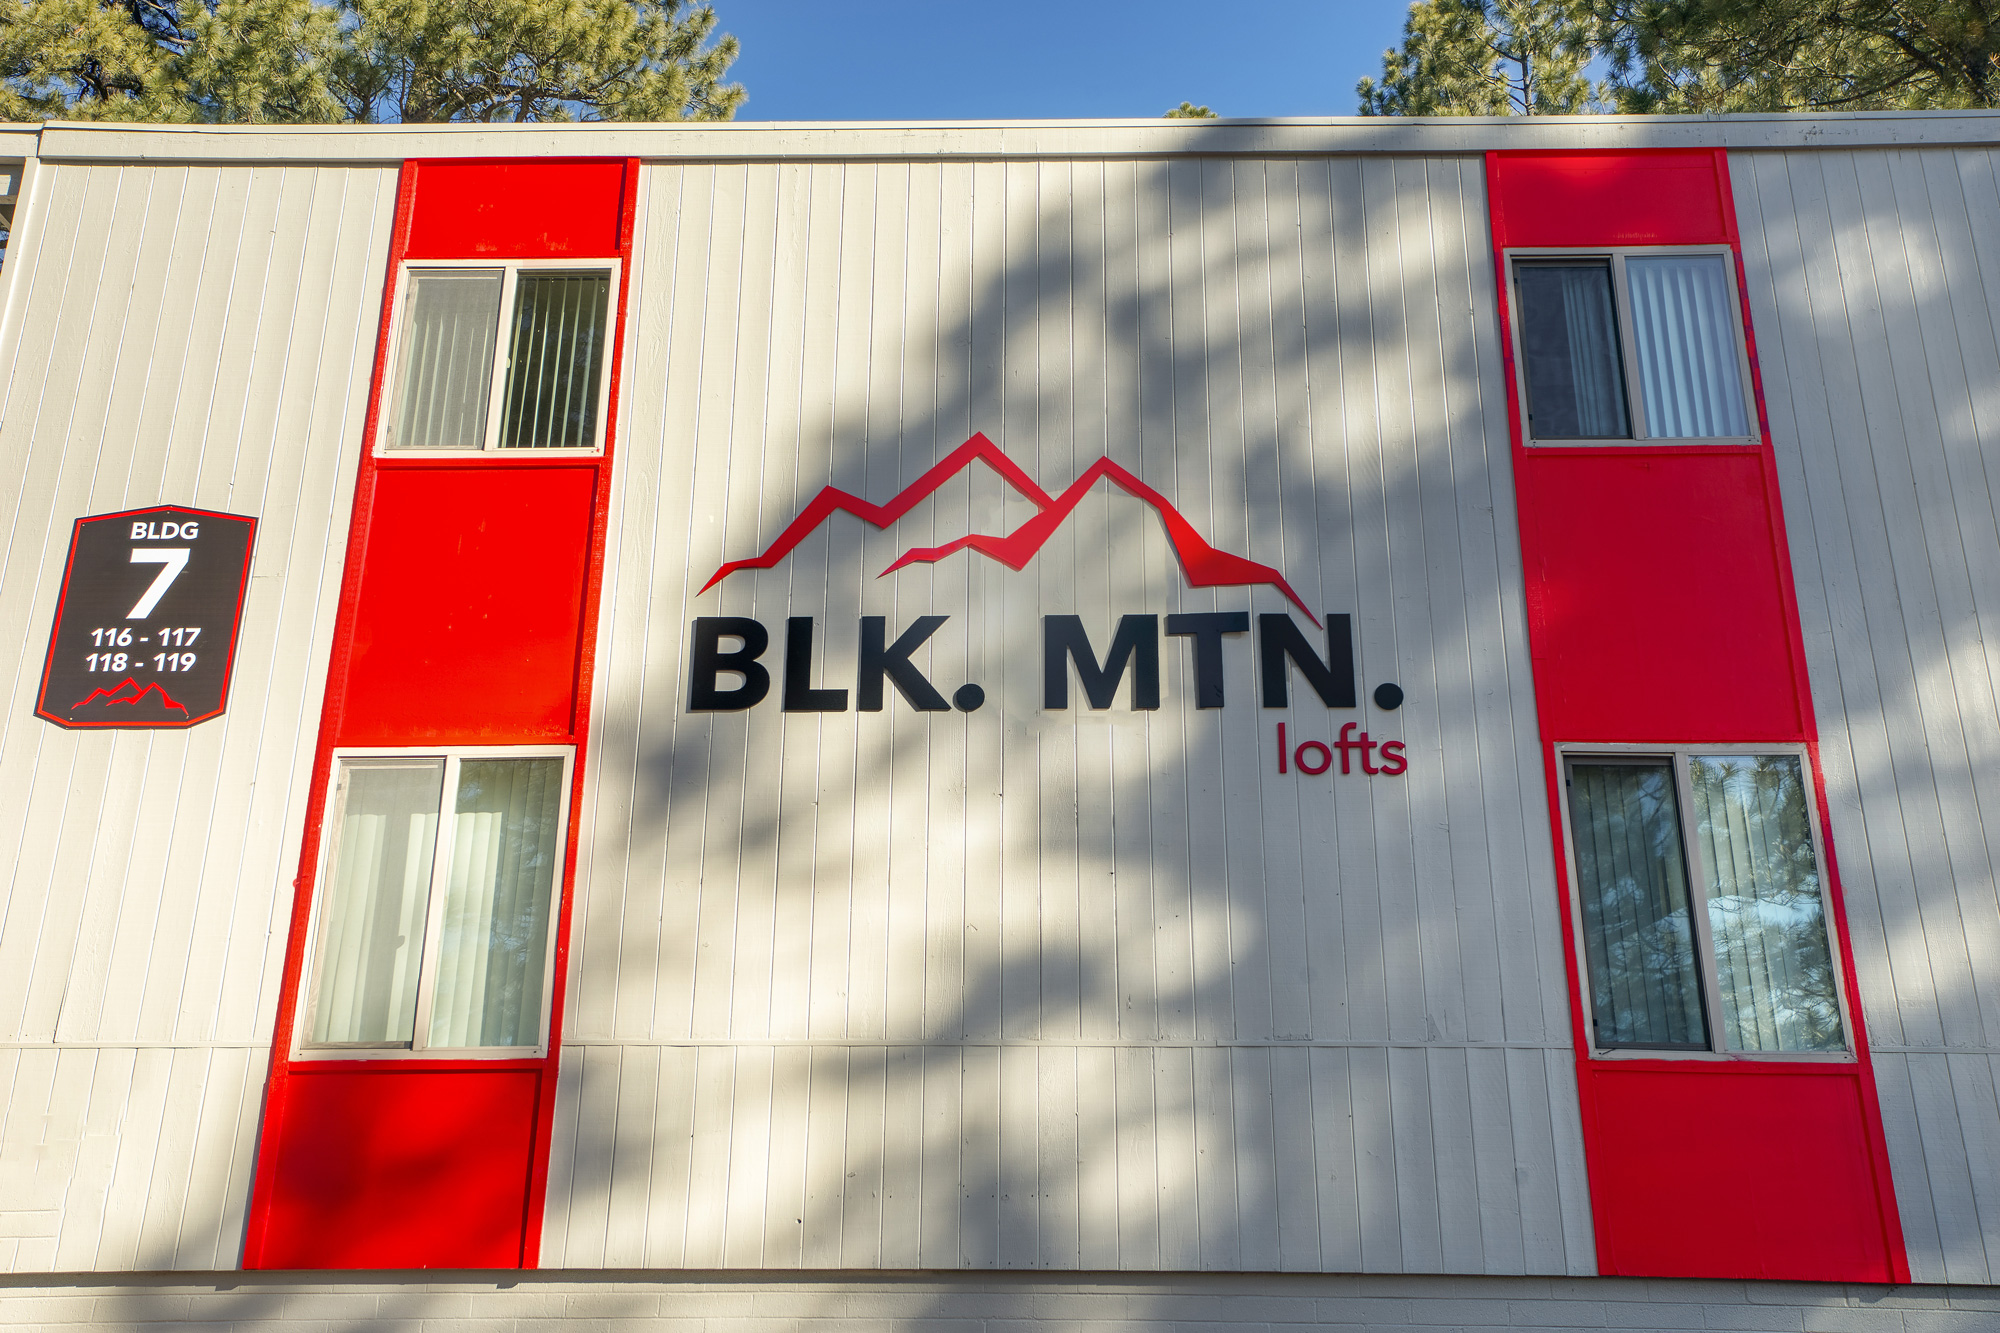 Luxury Flagstaff Apartments at Blk. Mtn. Lofts Apartments in Flagstaff, Arizona